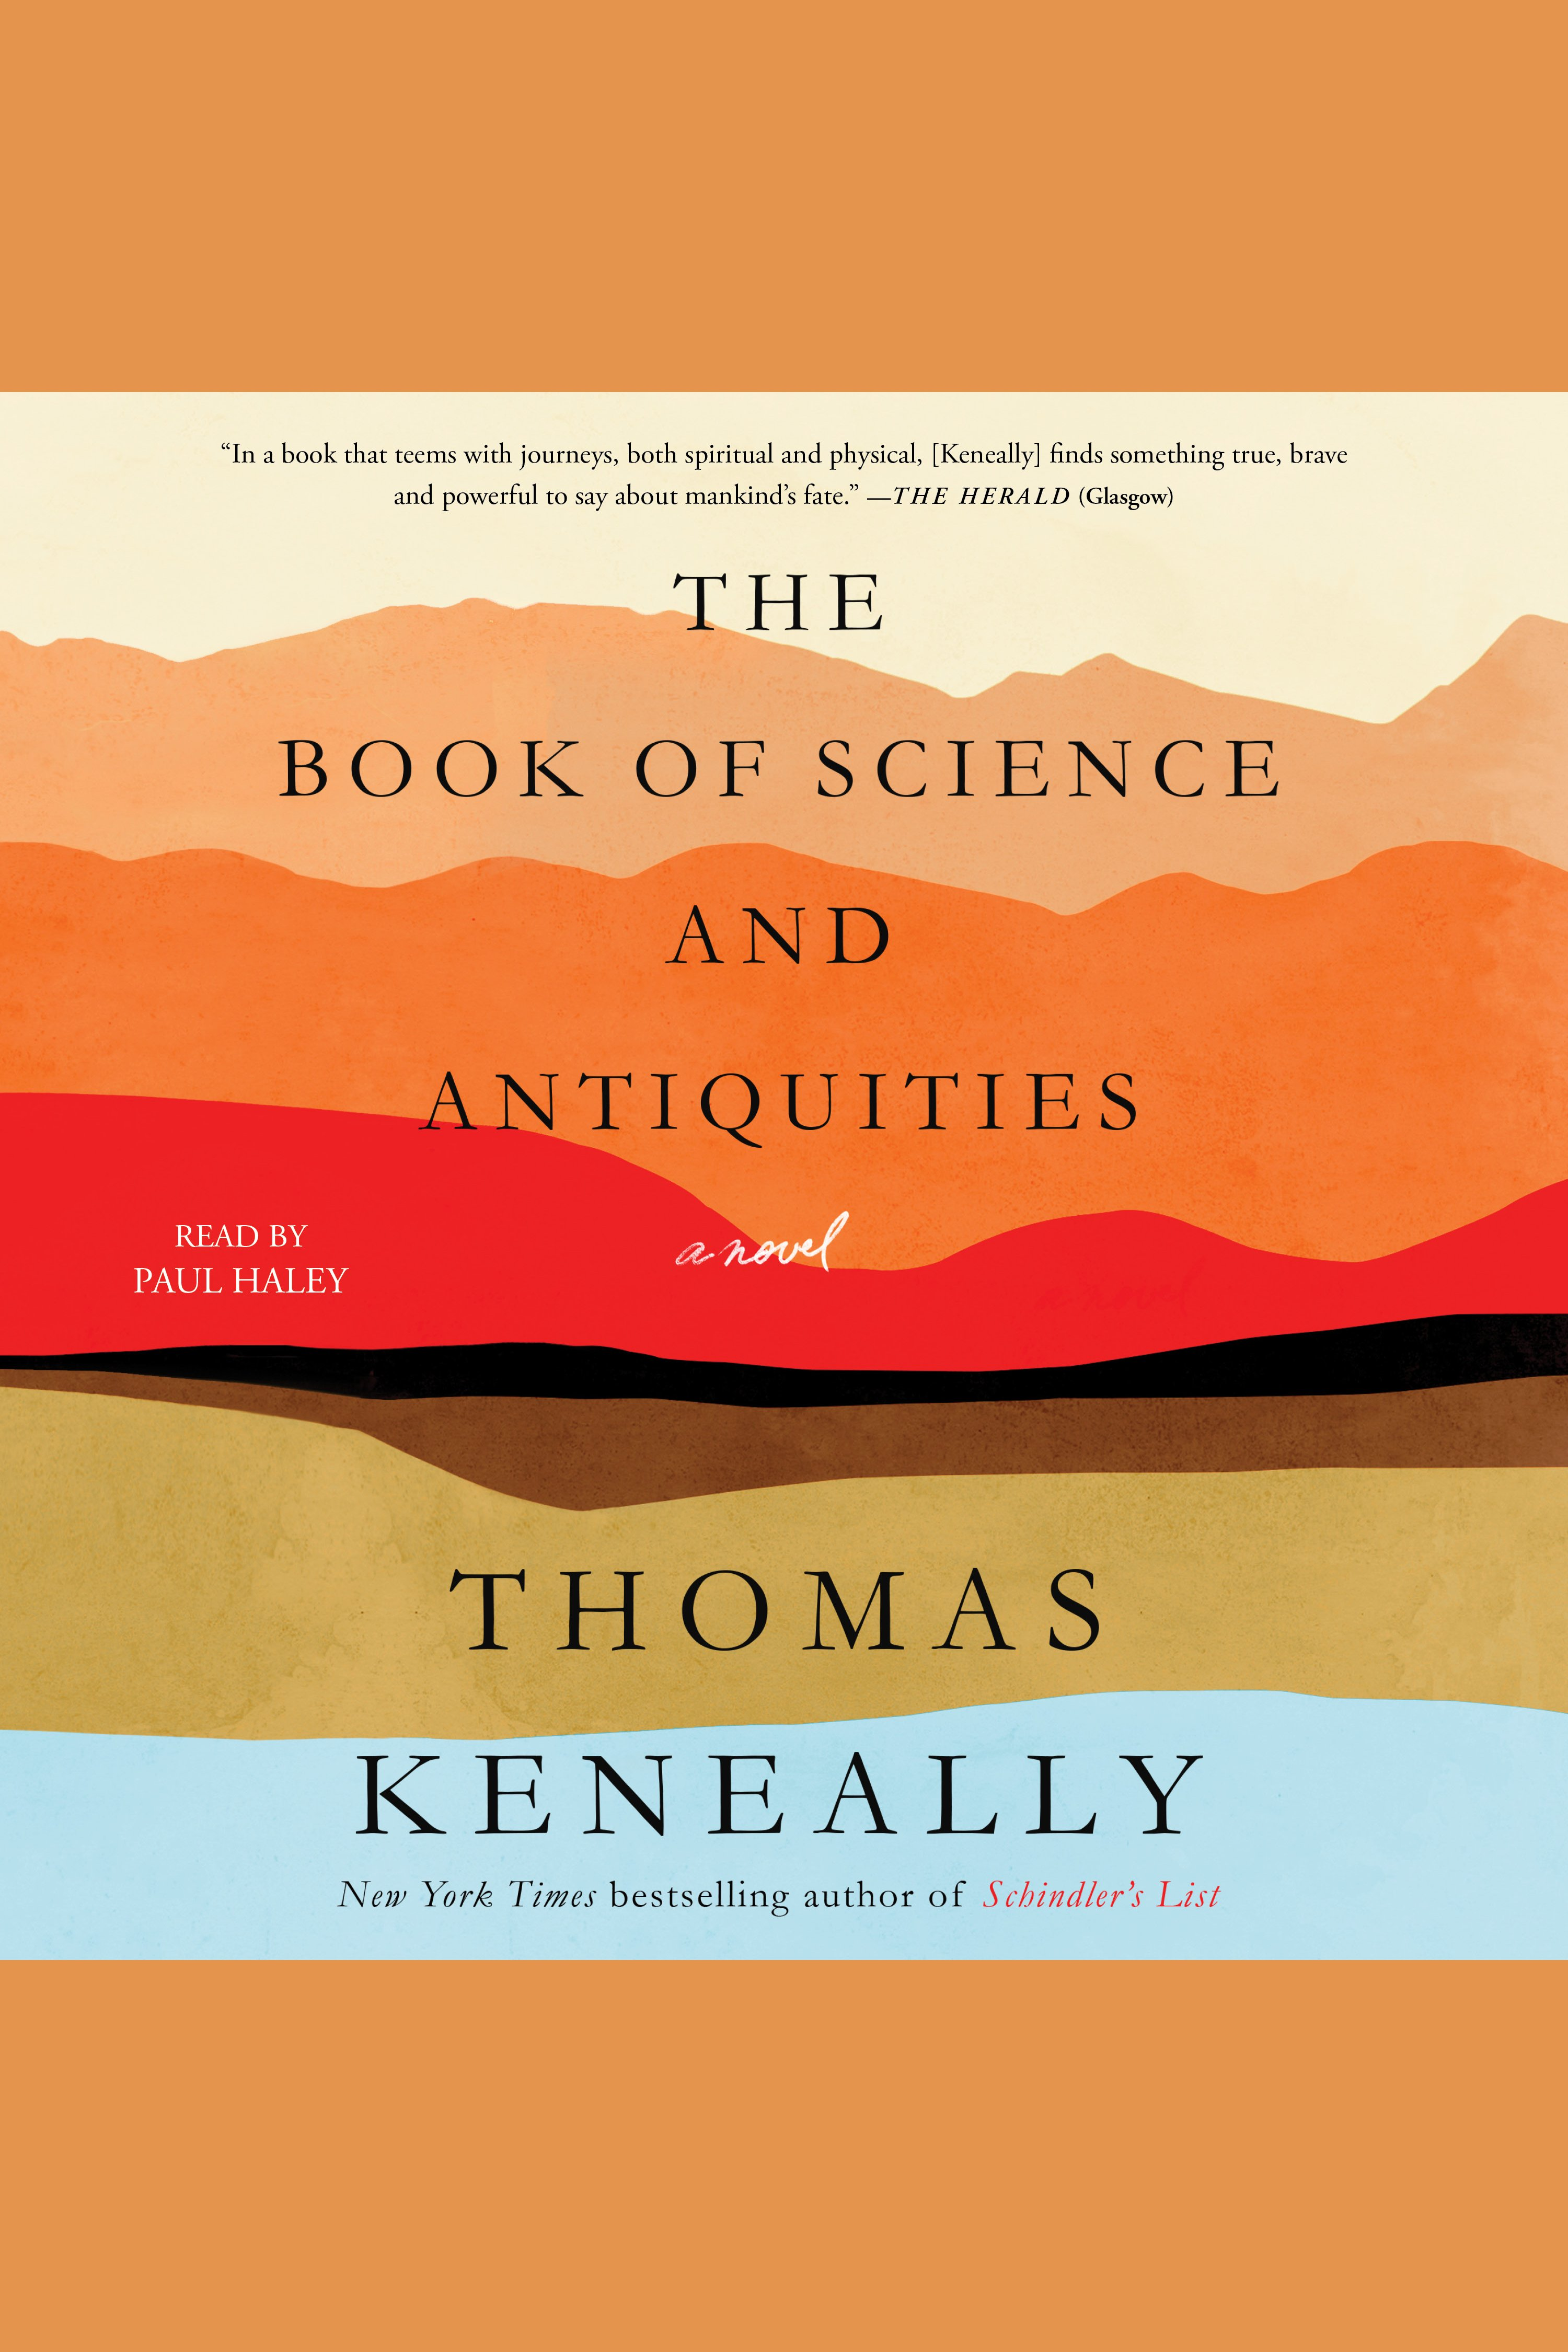 Book of Science and Antiquities, The A Novel